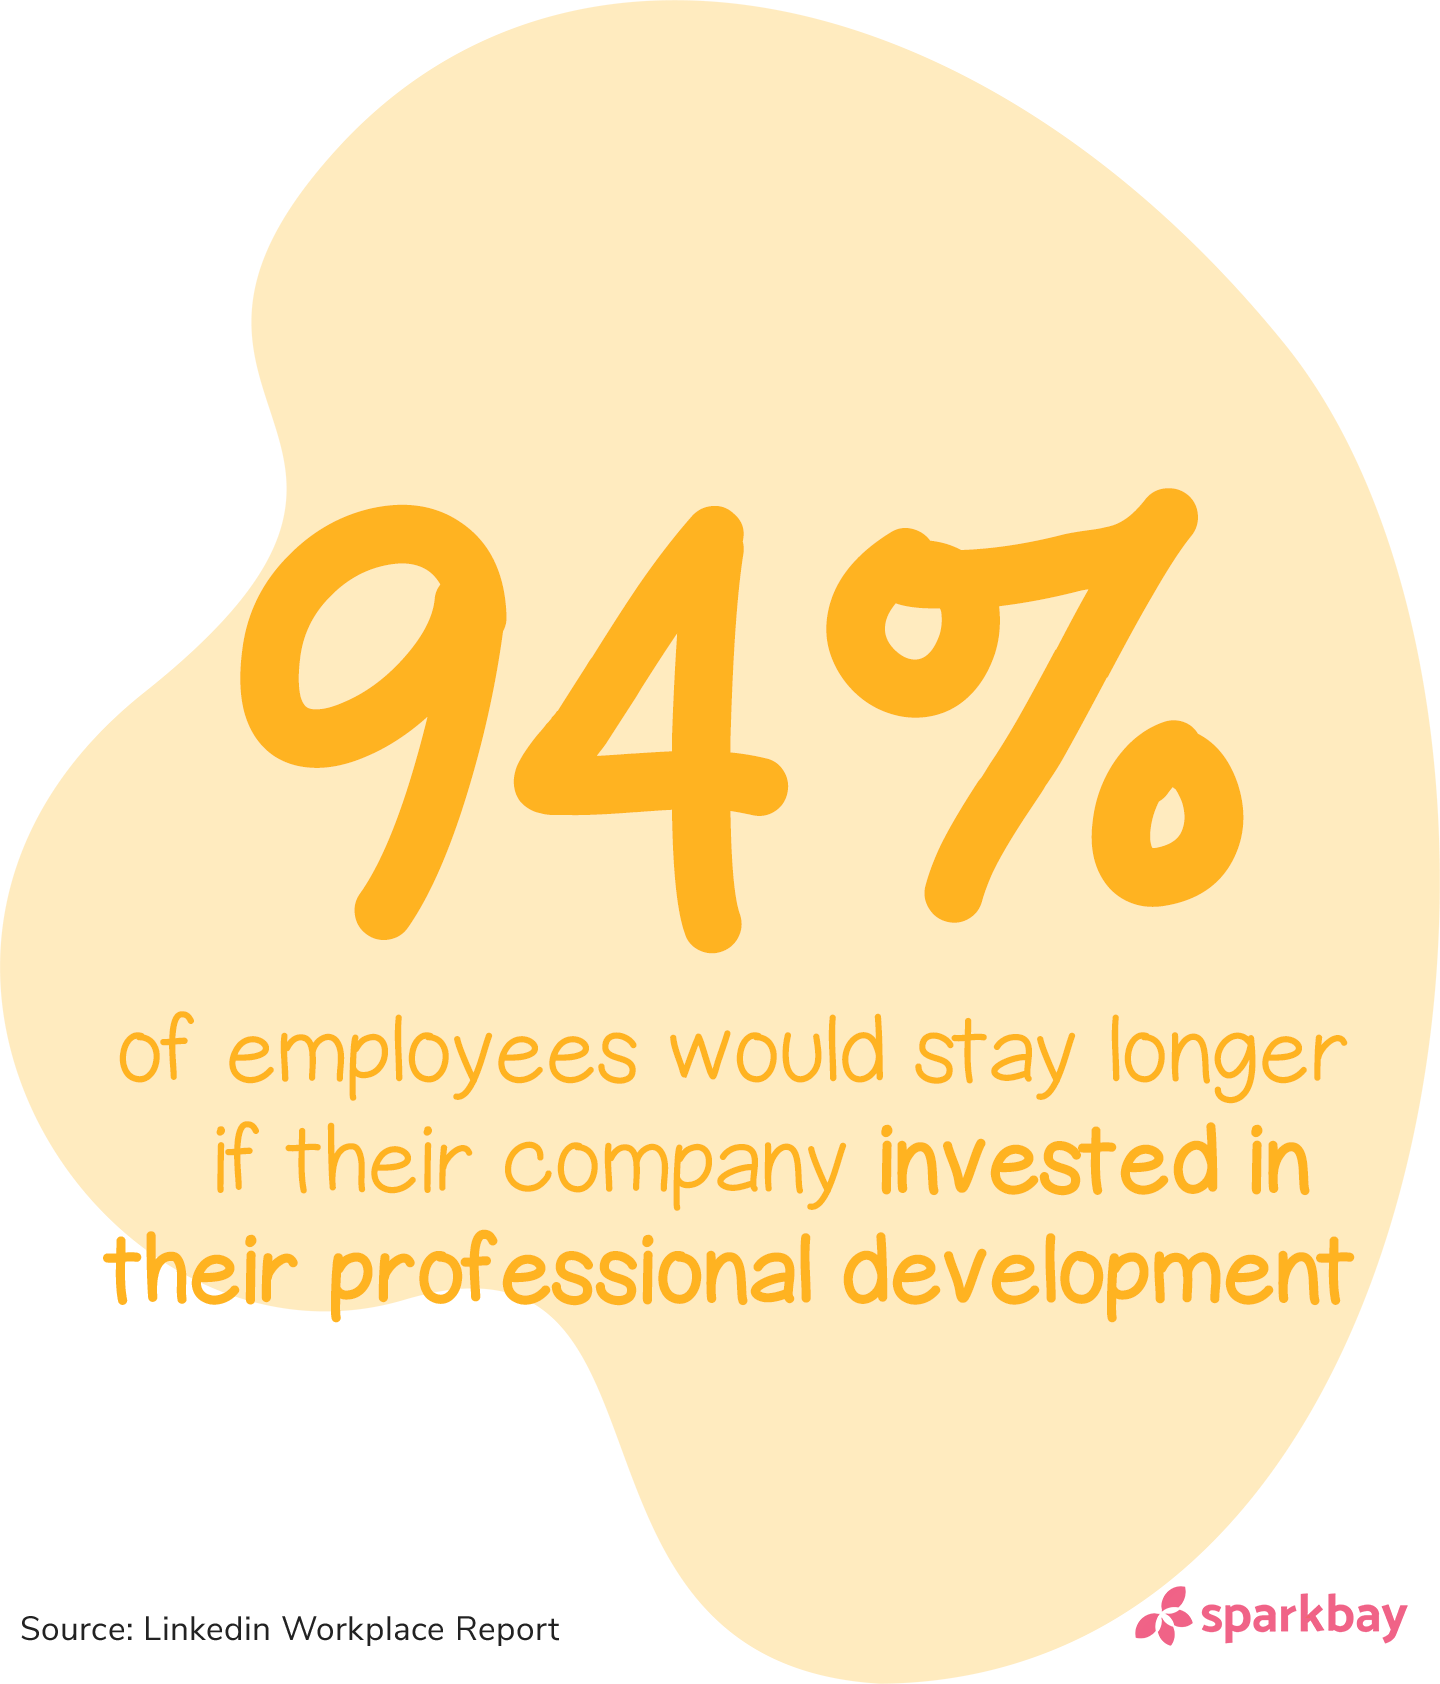 Profesionnal development statistics: 94% of employees would stay at a company longer if it invested in their professional development.